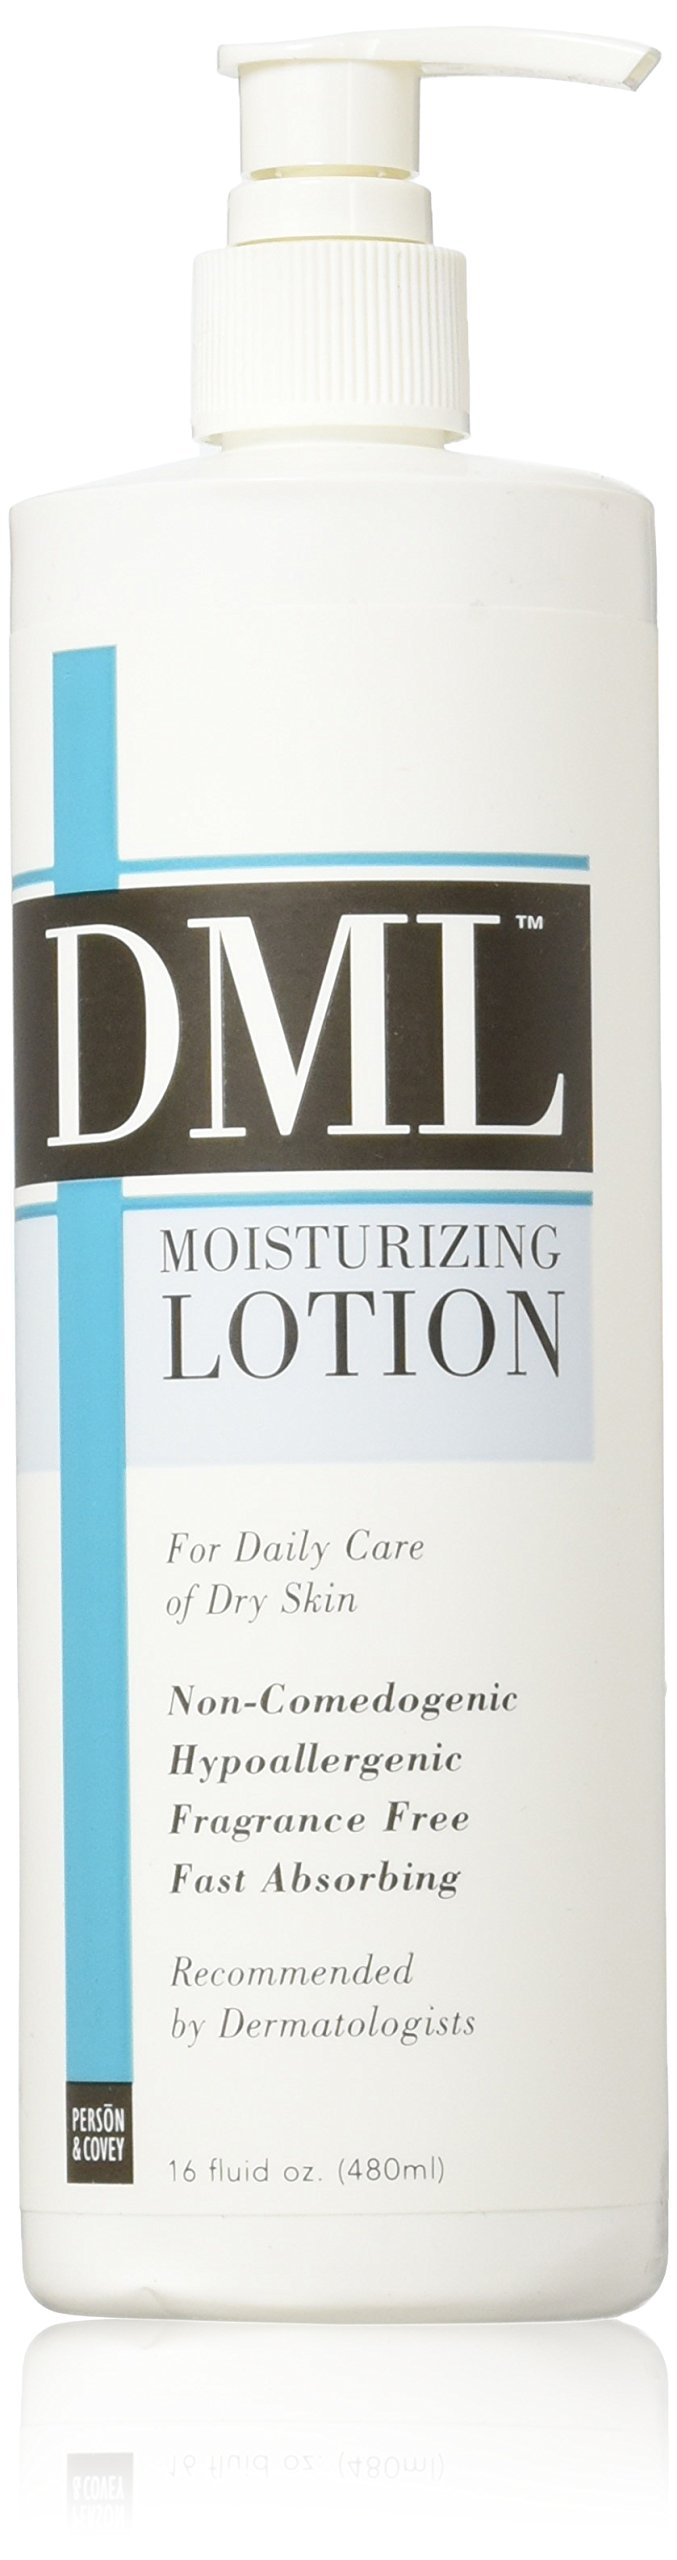 DML Moisturizing Lotion 16 Fl Oz (Pack of 2) - Buy Online in Aruba ...